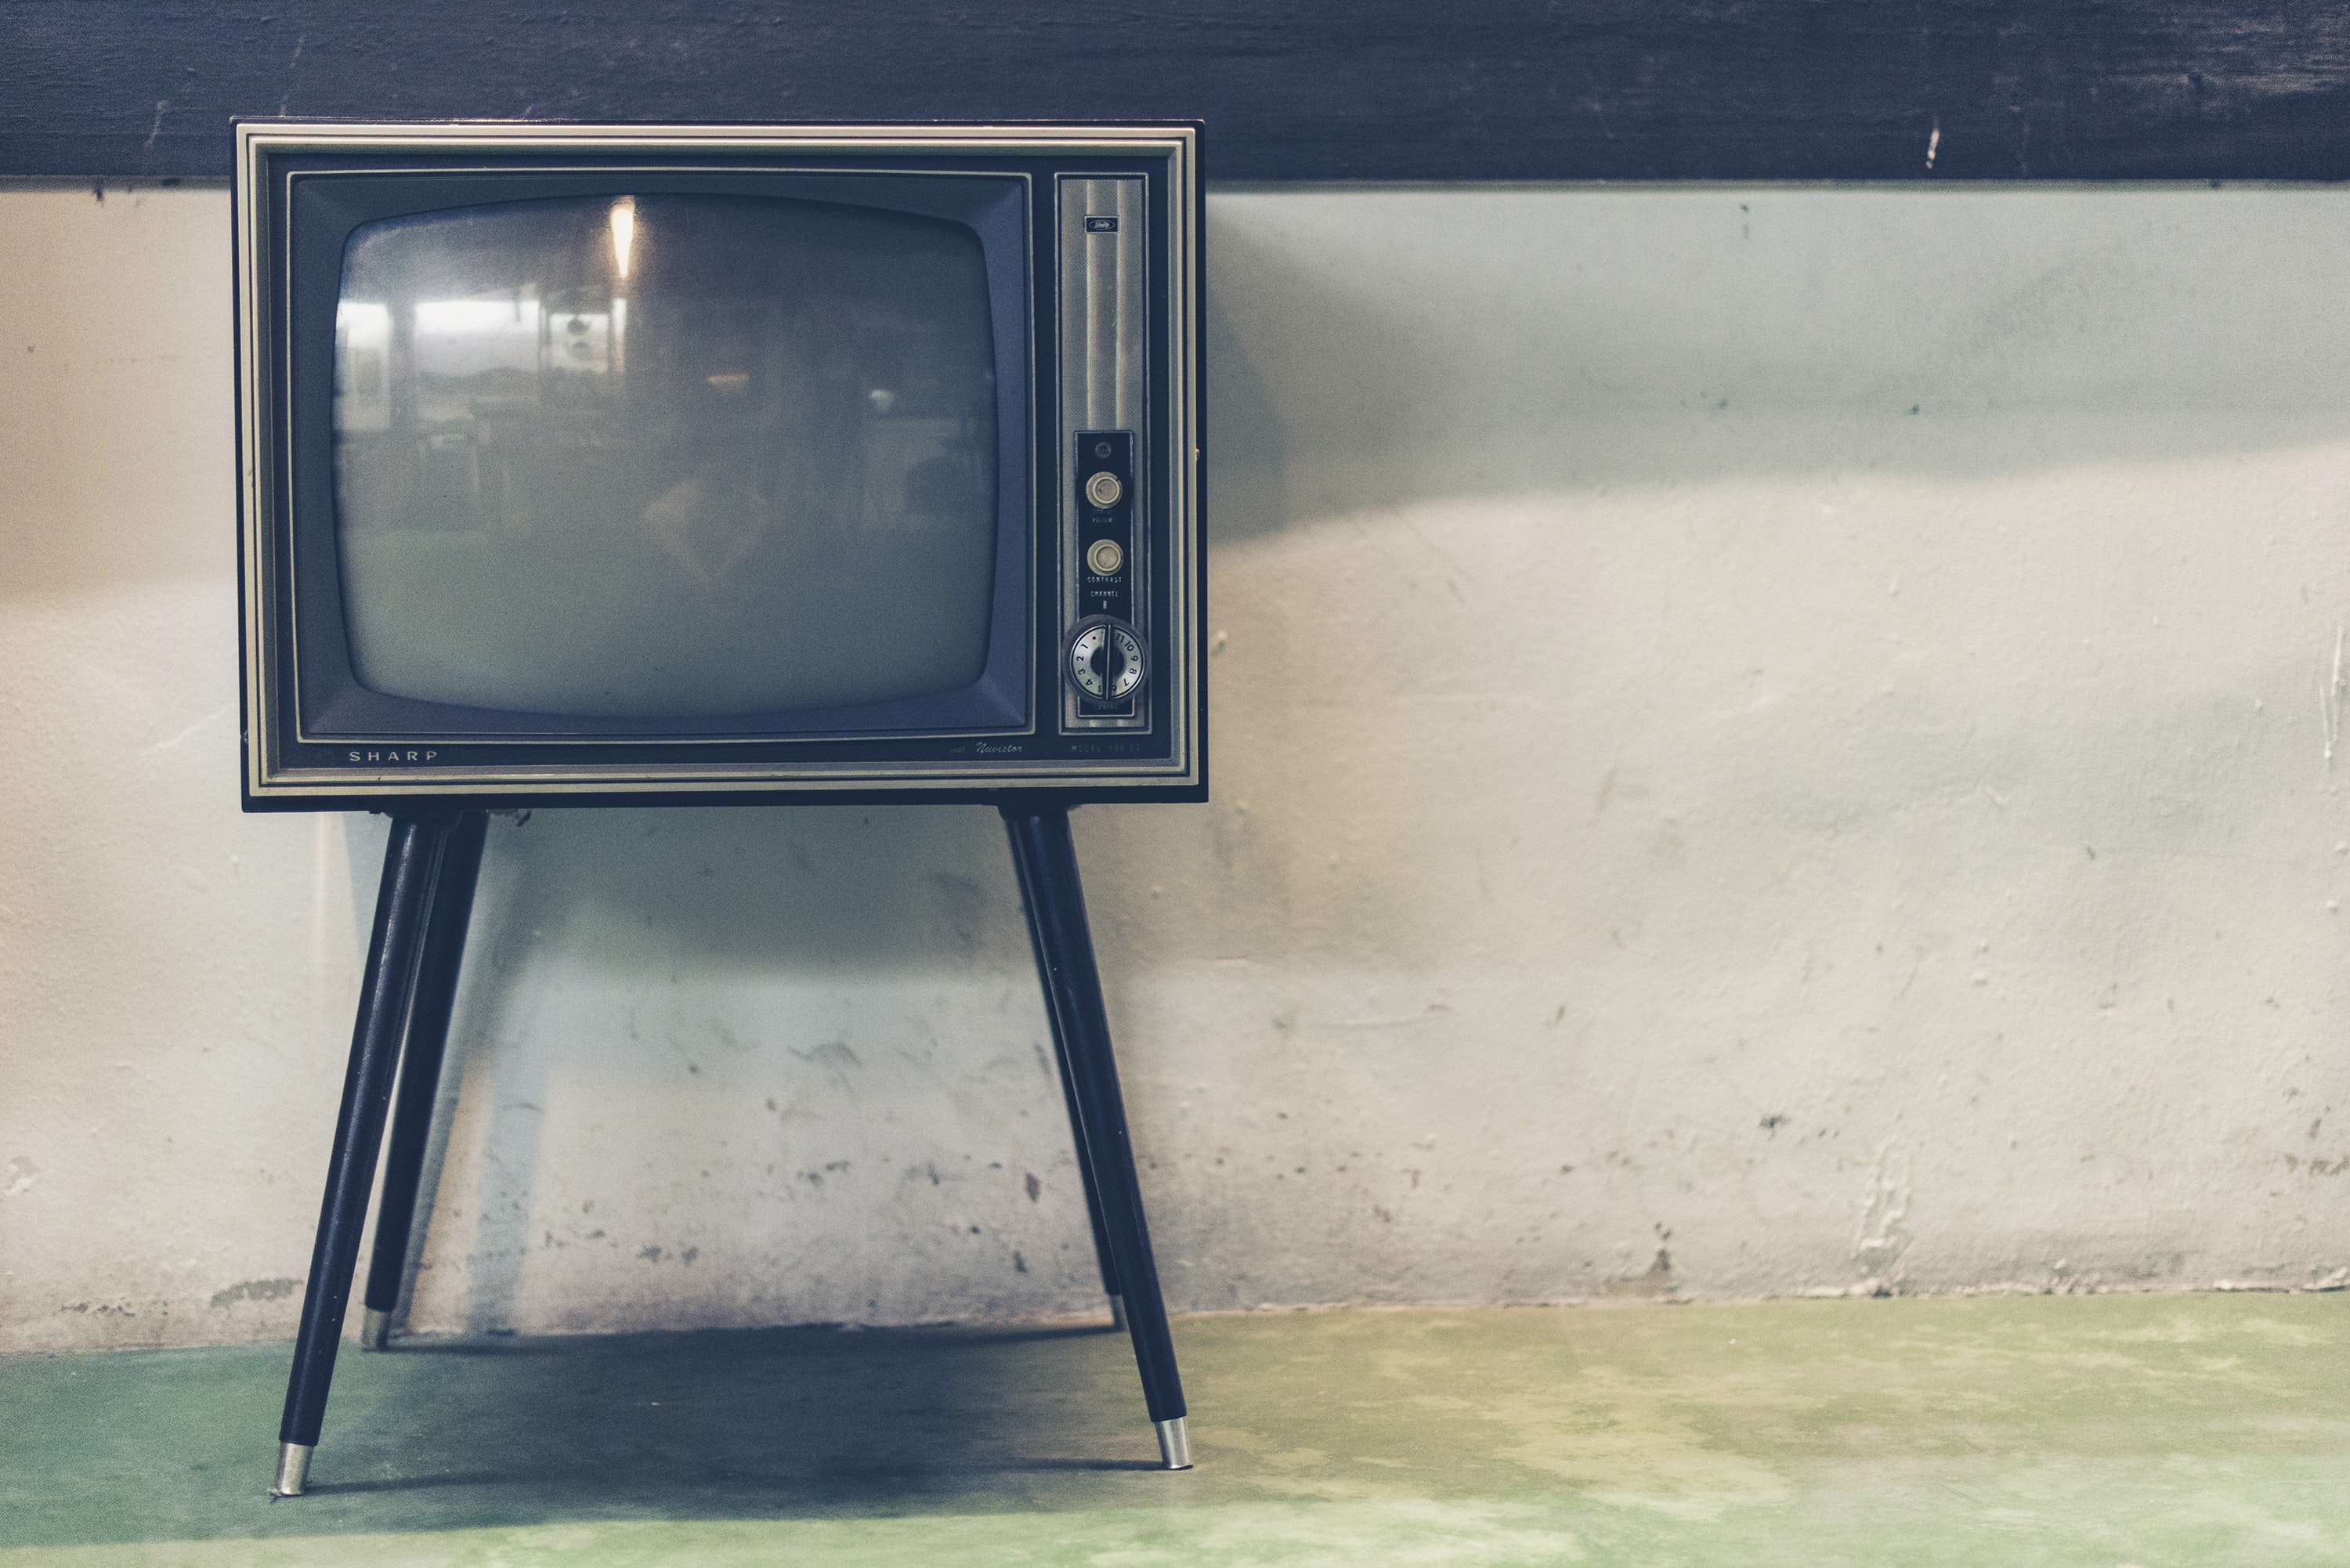 An old television set near a dilapidated wall